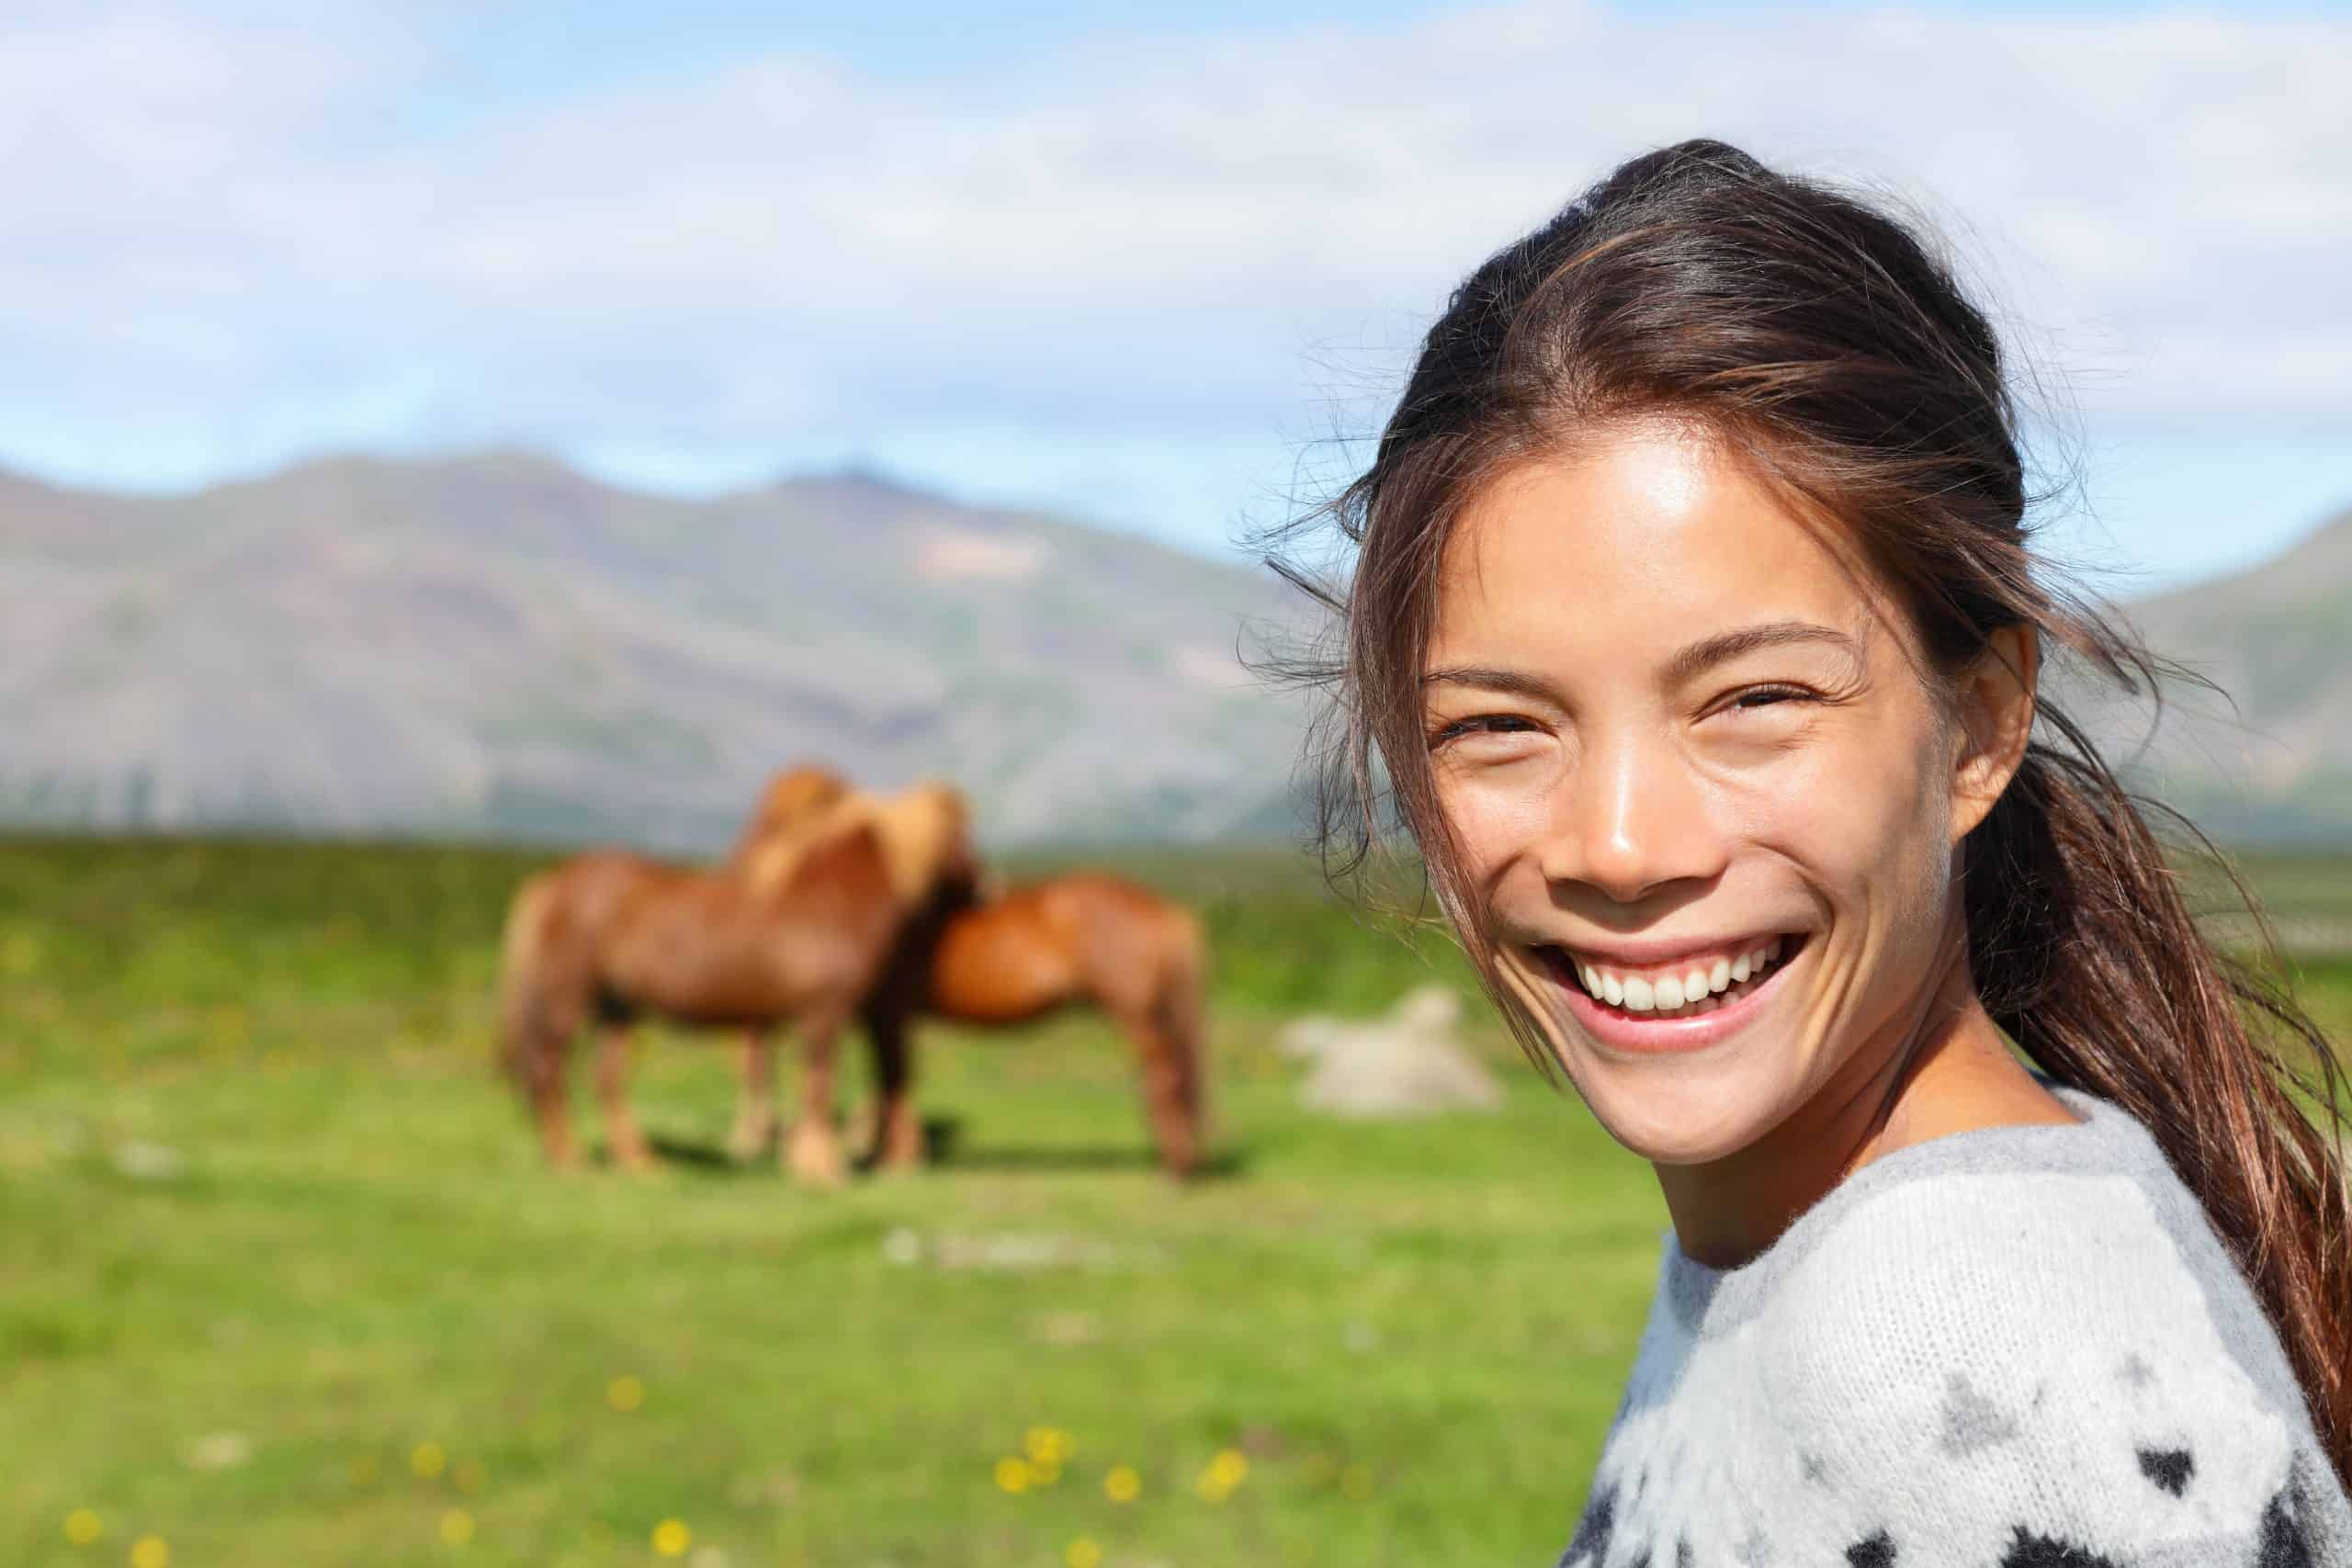 horses mental health benefits Woman on Iceland smiling with Icelandic horses. Portrait of happy multicultural girl wearing Icelandic sweater standing outdoors in nature field in front of horse.